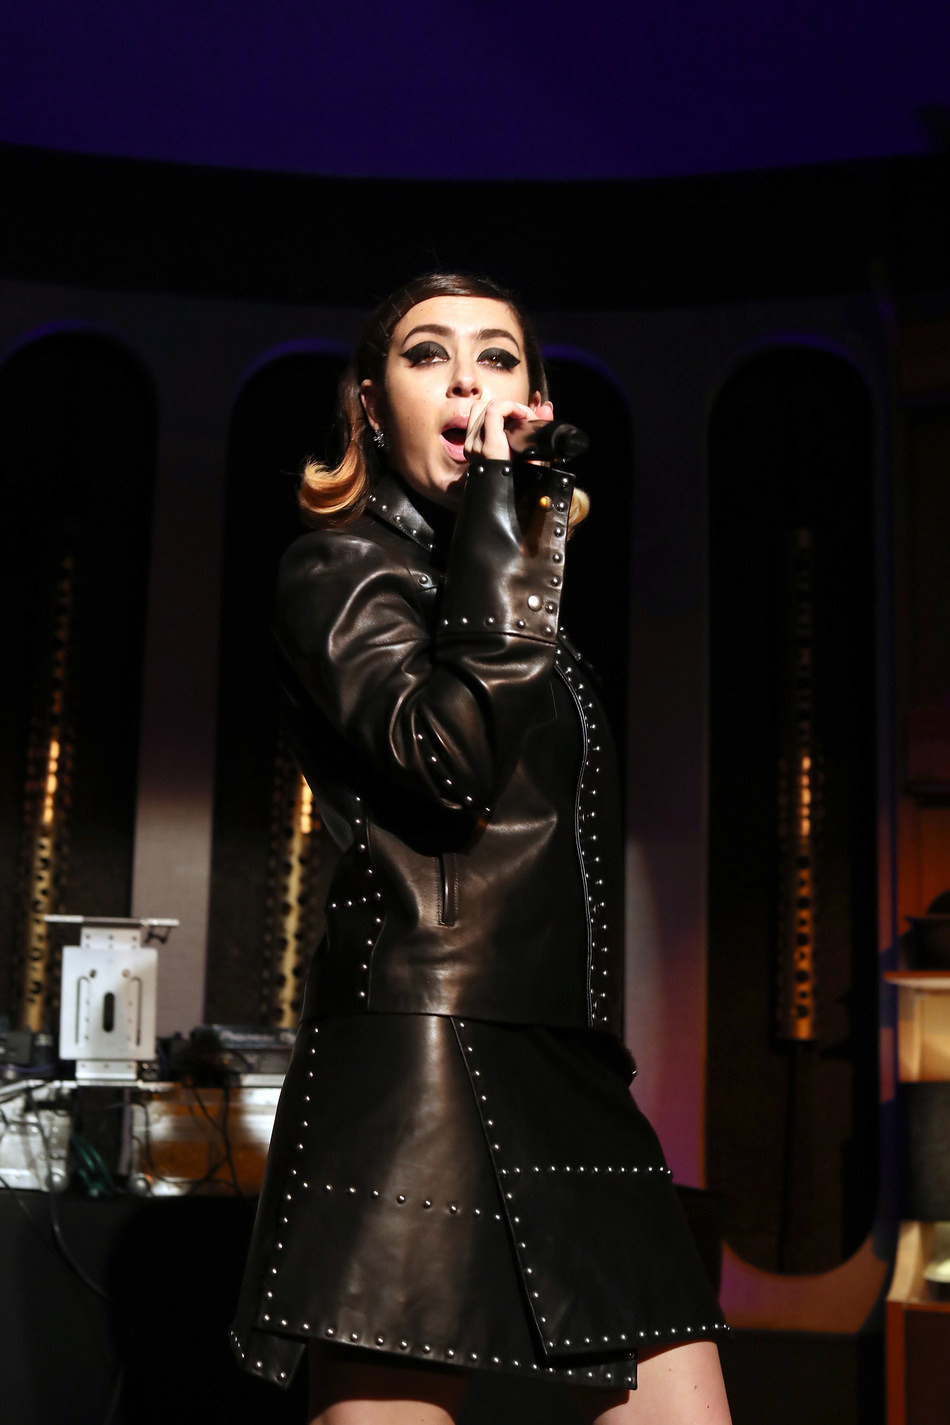 """Charli XCX performs at """"LiveXLive Presents"""" event at the Peppermint Club in West Hollywood, California, on February 10, 2019."""